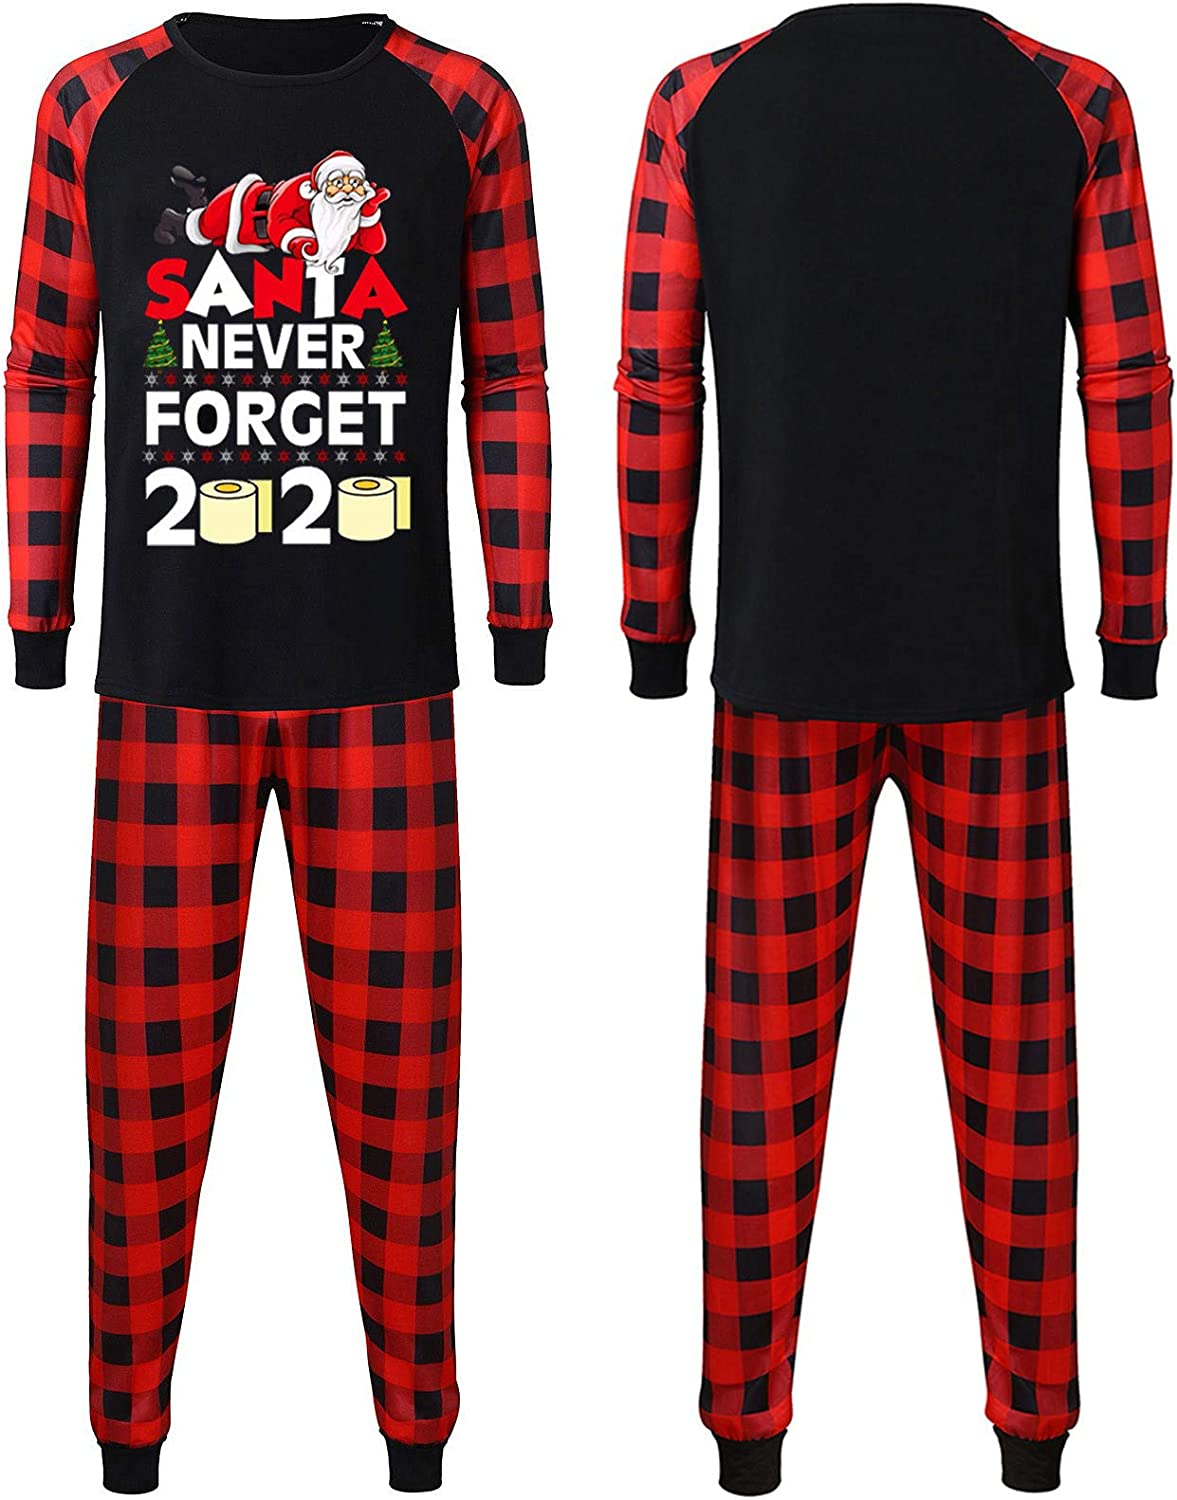 Matching Family Christmas Pajamas Set Parent-Child Outfit Suit with Red Plaid,Xmas Nightwear Sleepwear for Man Women Girl Boy Baby